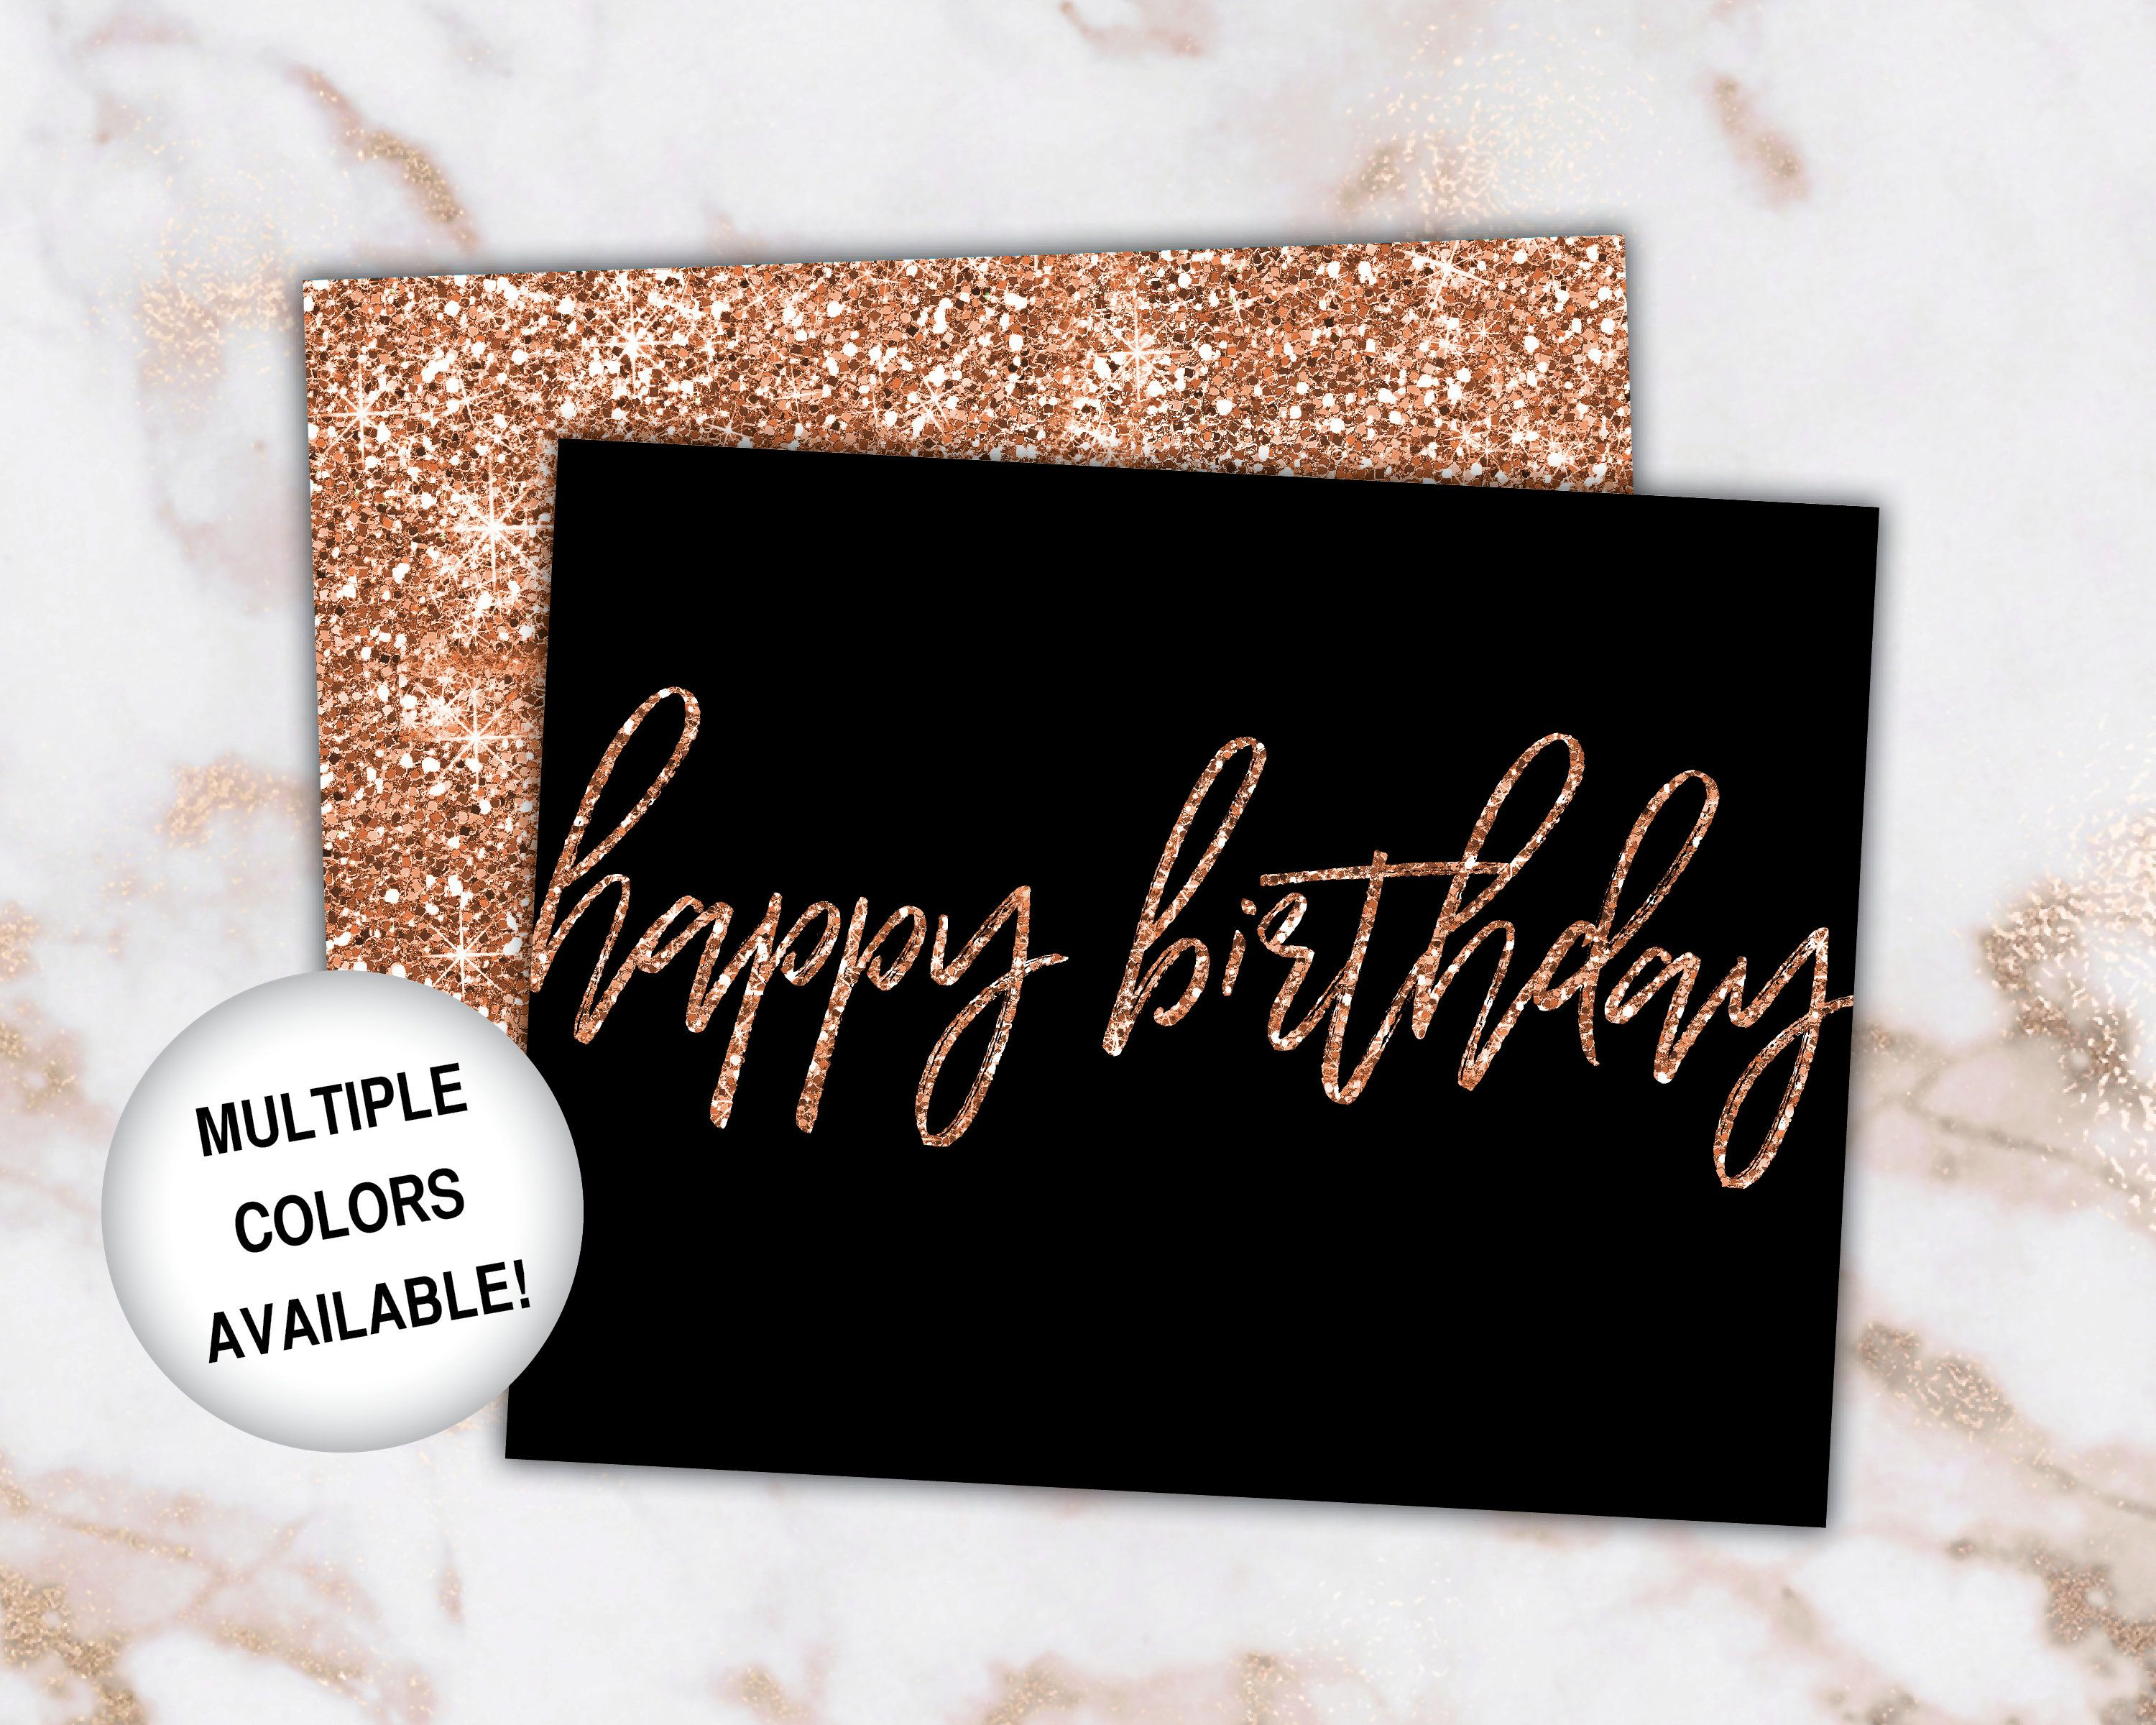 Printable Birthday Cards Rose Gold Birthday Cards Happy Birthday Card Template Rose Gold Glitter Rose Gold Glitter Printed A2 Size Birthday Card Printable Birthday Card Template Birthday Cards